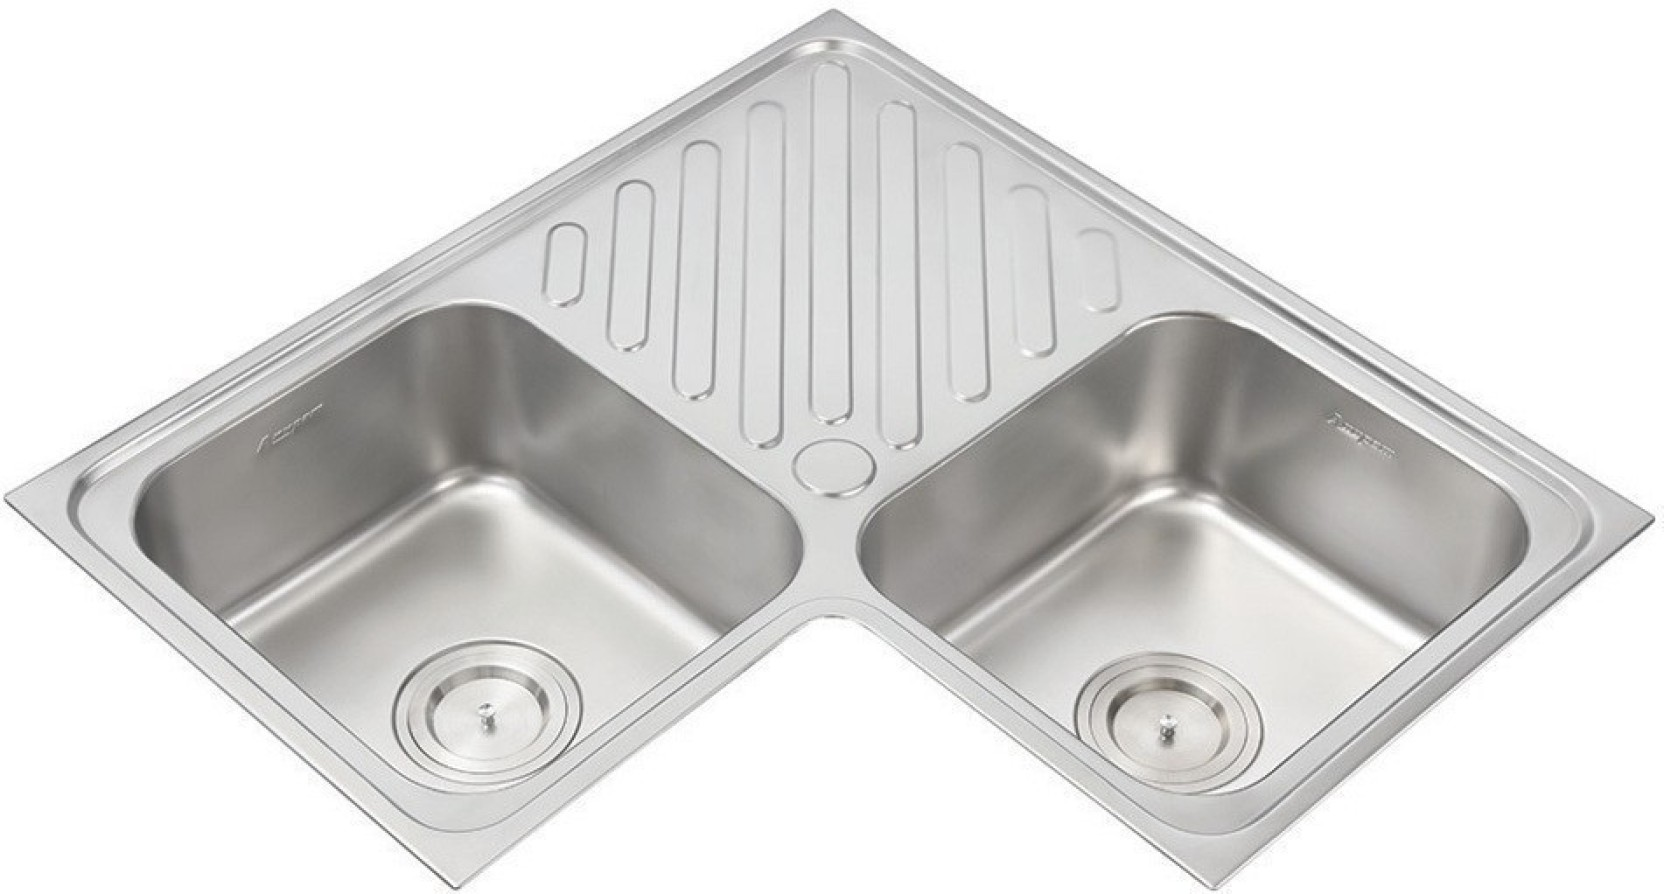 Anupam luxe sink model 312 corner basin stainless steel